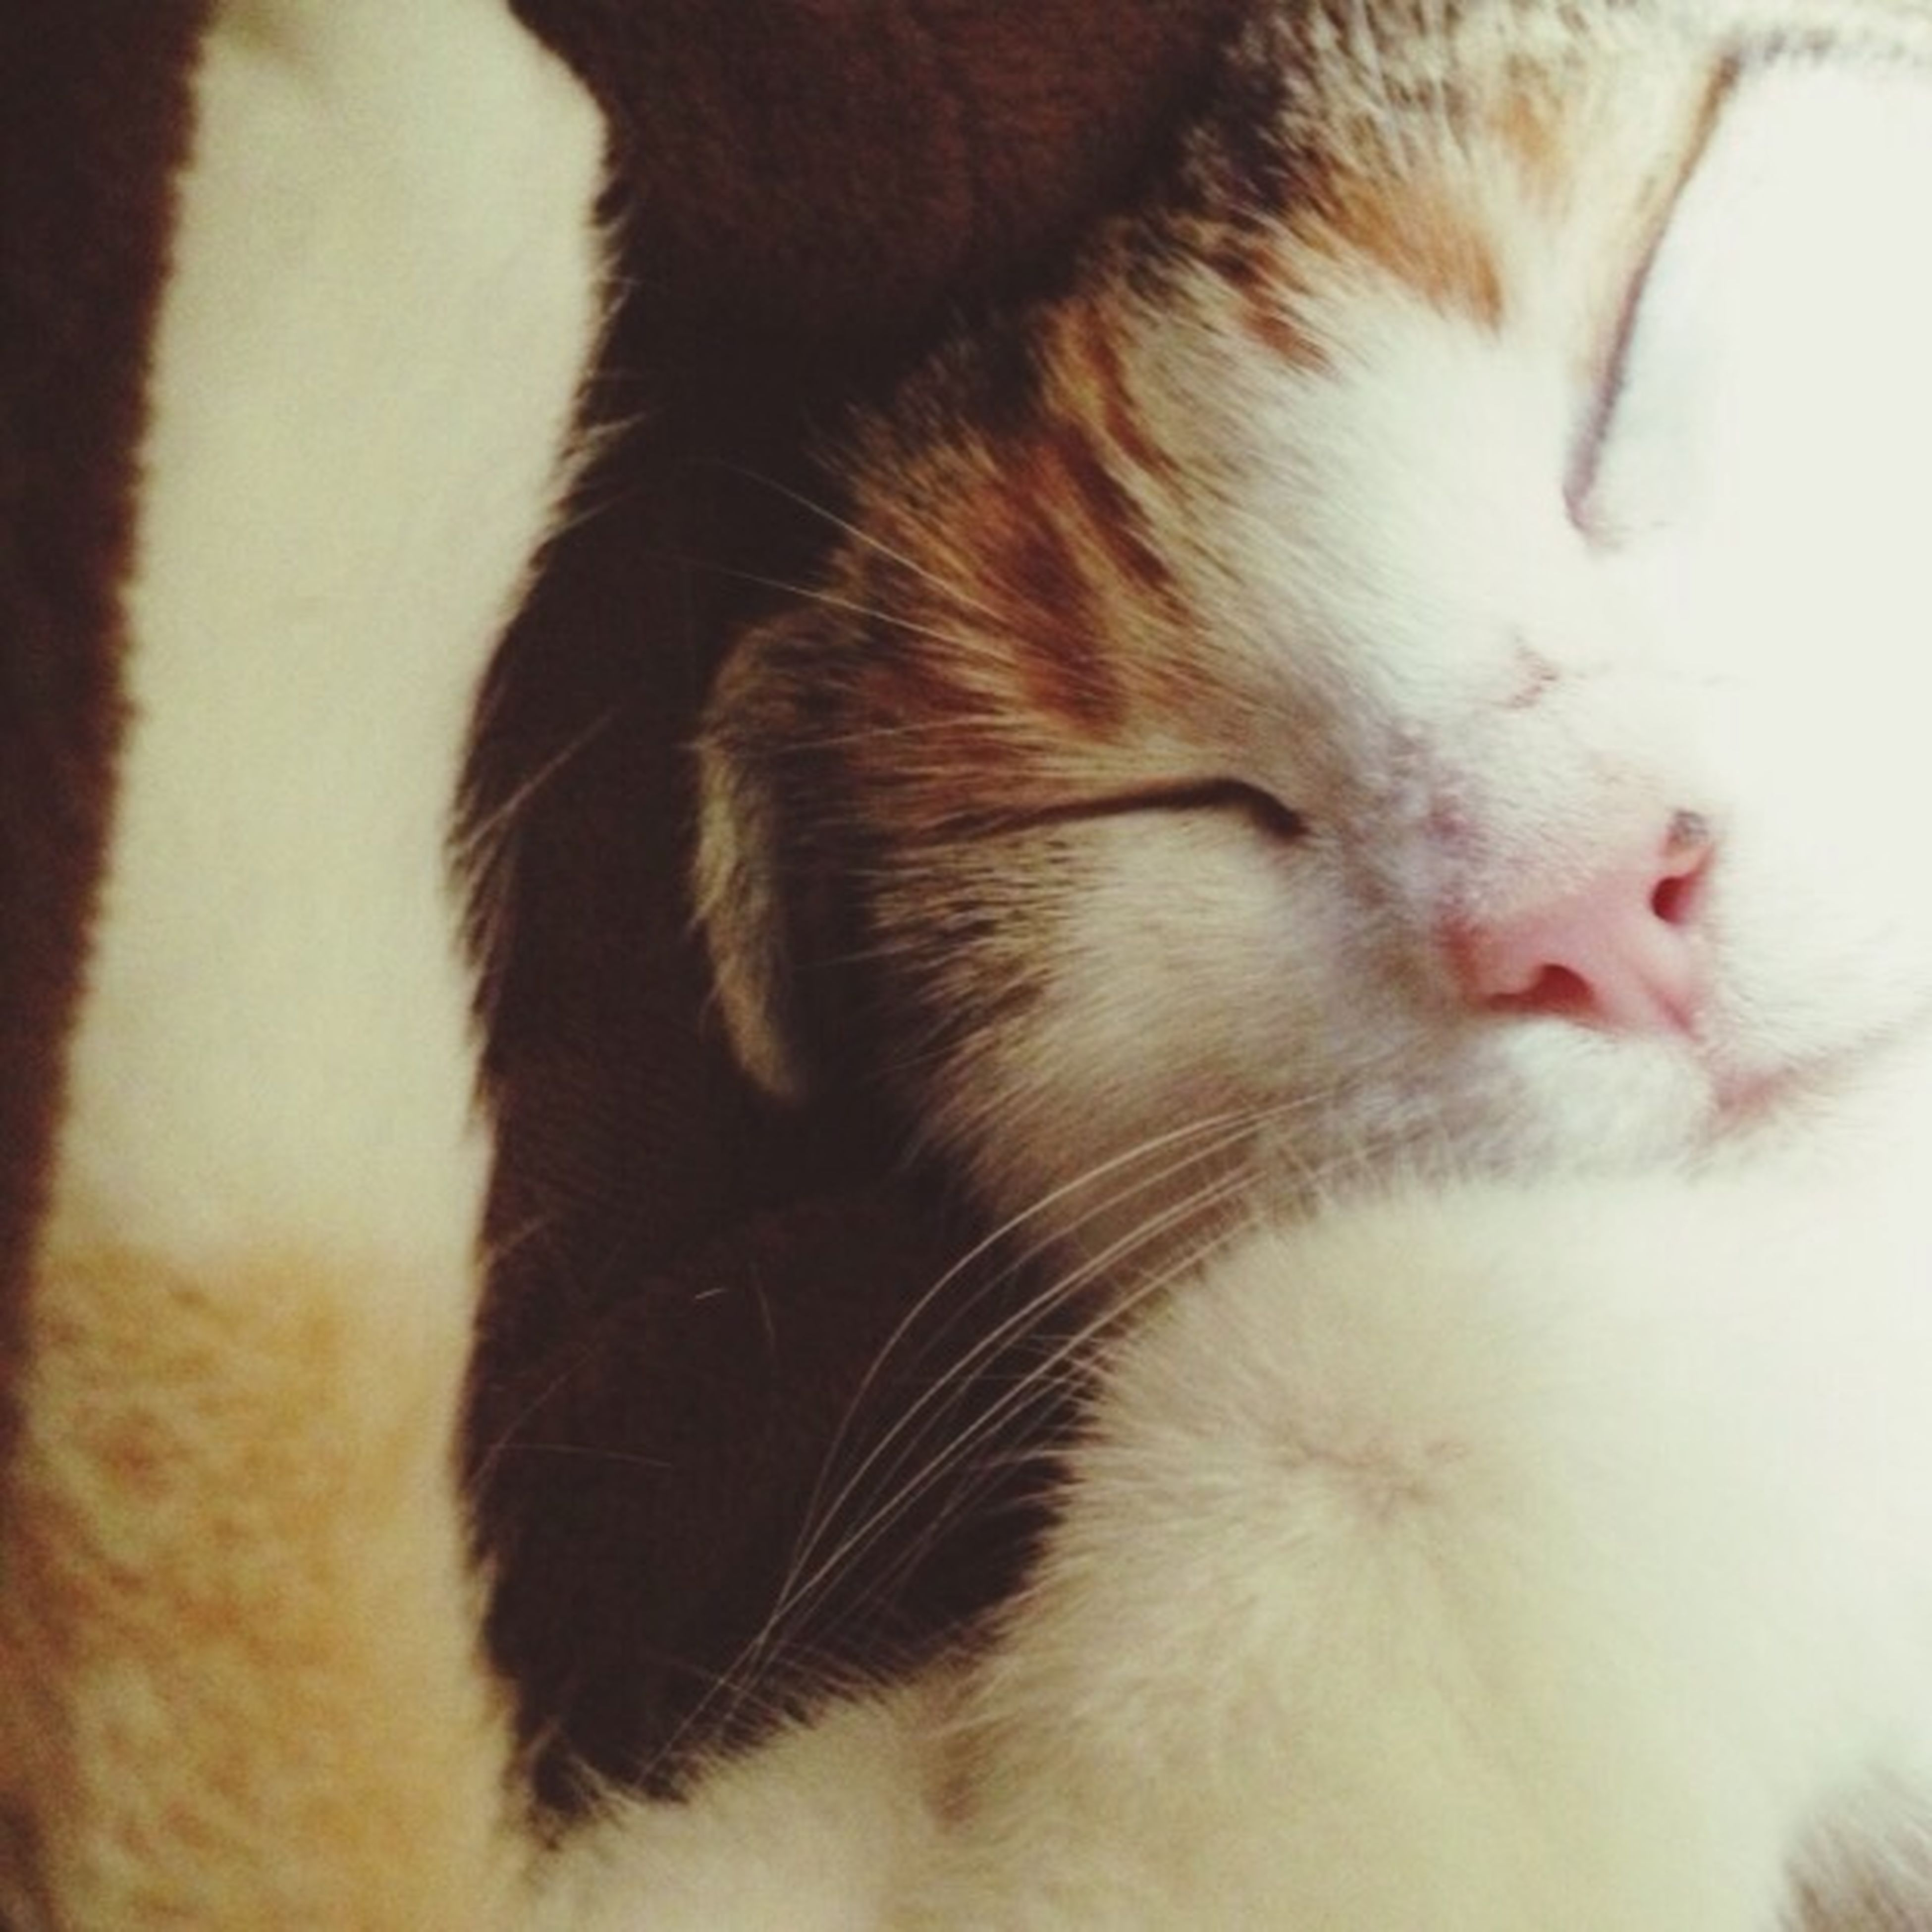 domestic cat, cat, domestic animals, pets, feline, animal themes, mammal, one animal, indoors, whisker, close-up, relaxation, sleeping, animal head, animal body part, eyes closed, resting, part of, lying down, no people